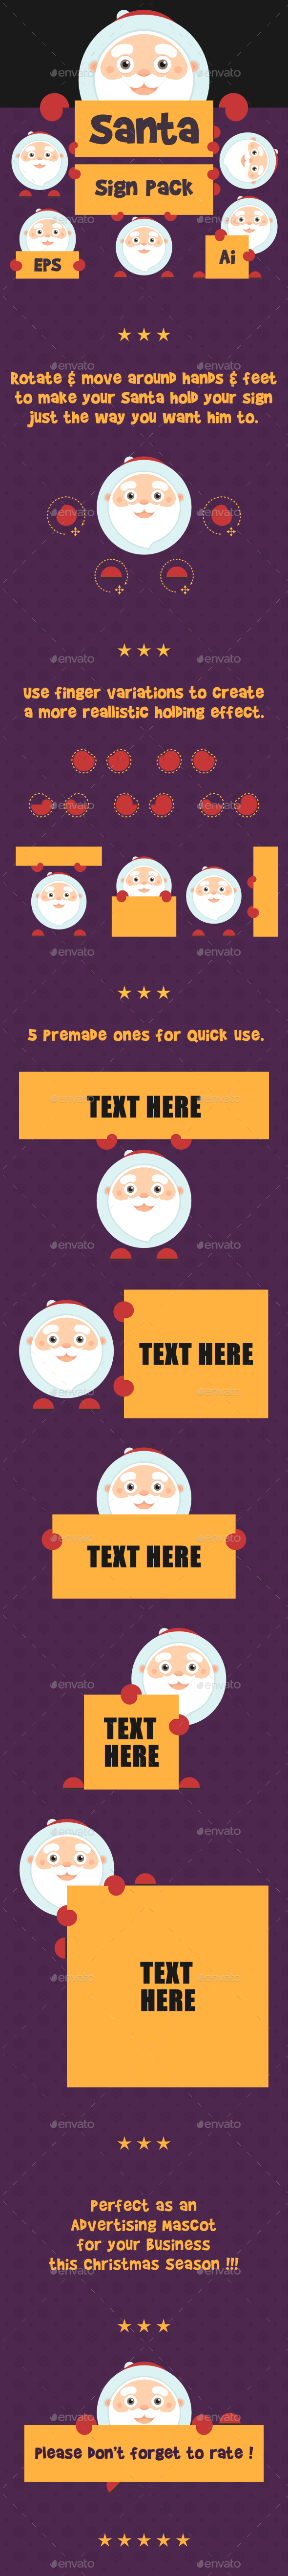 Cute Santa Mascot Sign Holding Creation Kit - People Characters